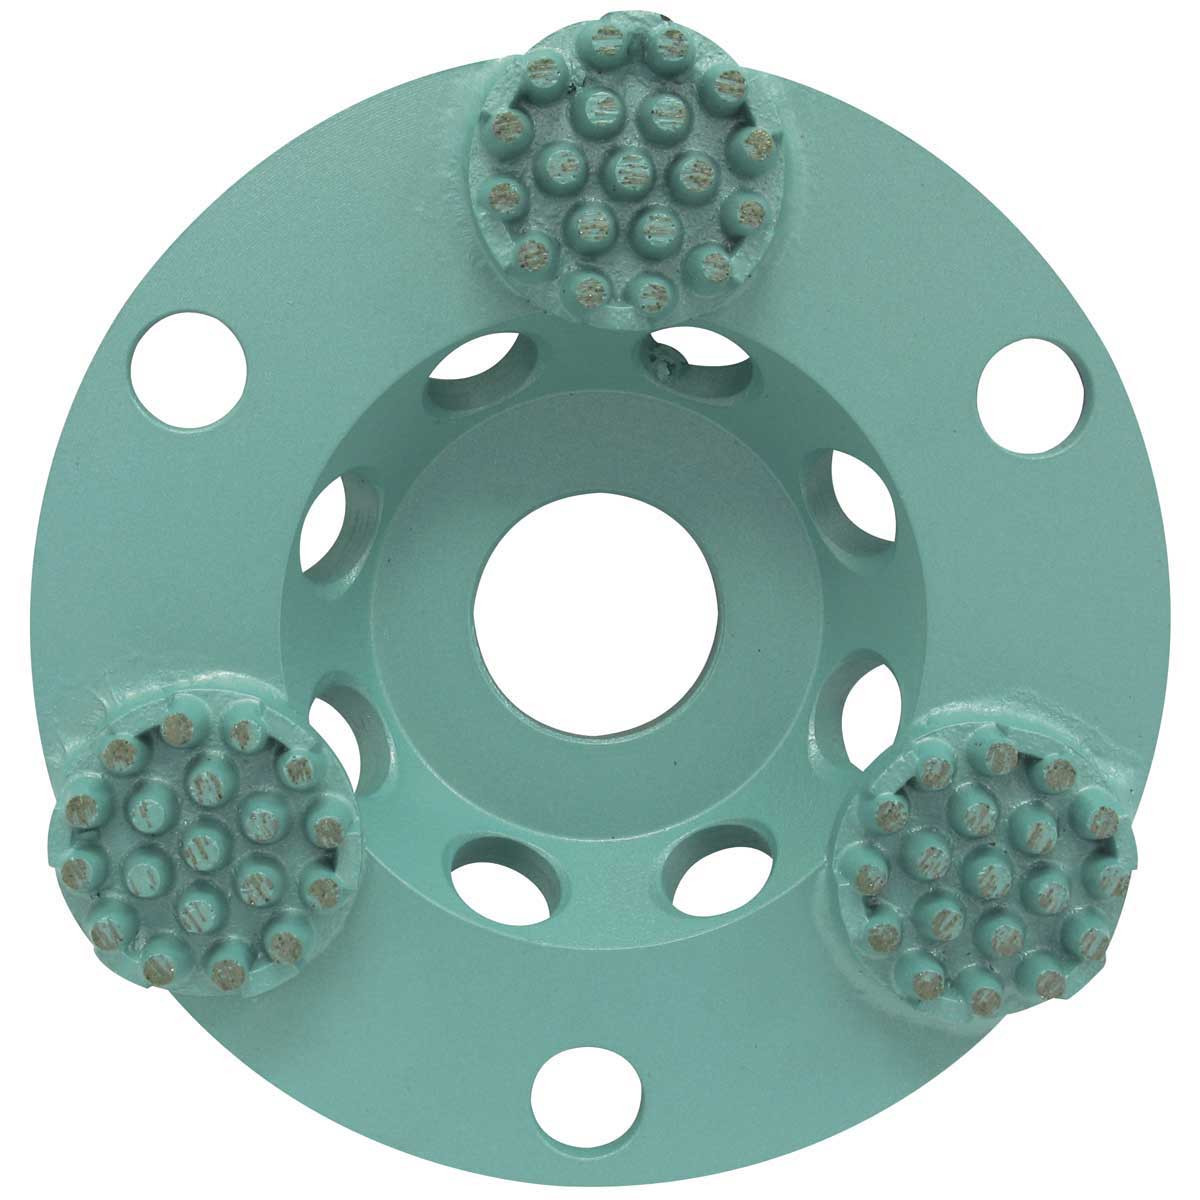 Pearl P4 Concrete and Natural Stone Button Cup Wheel